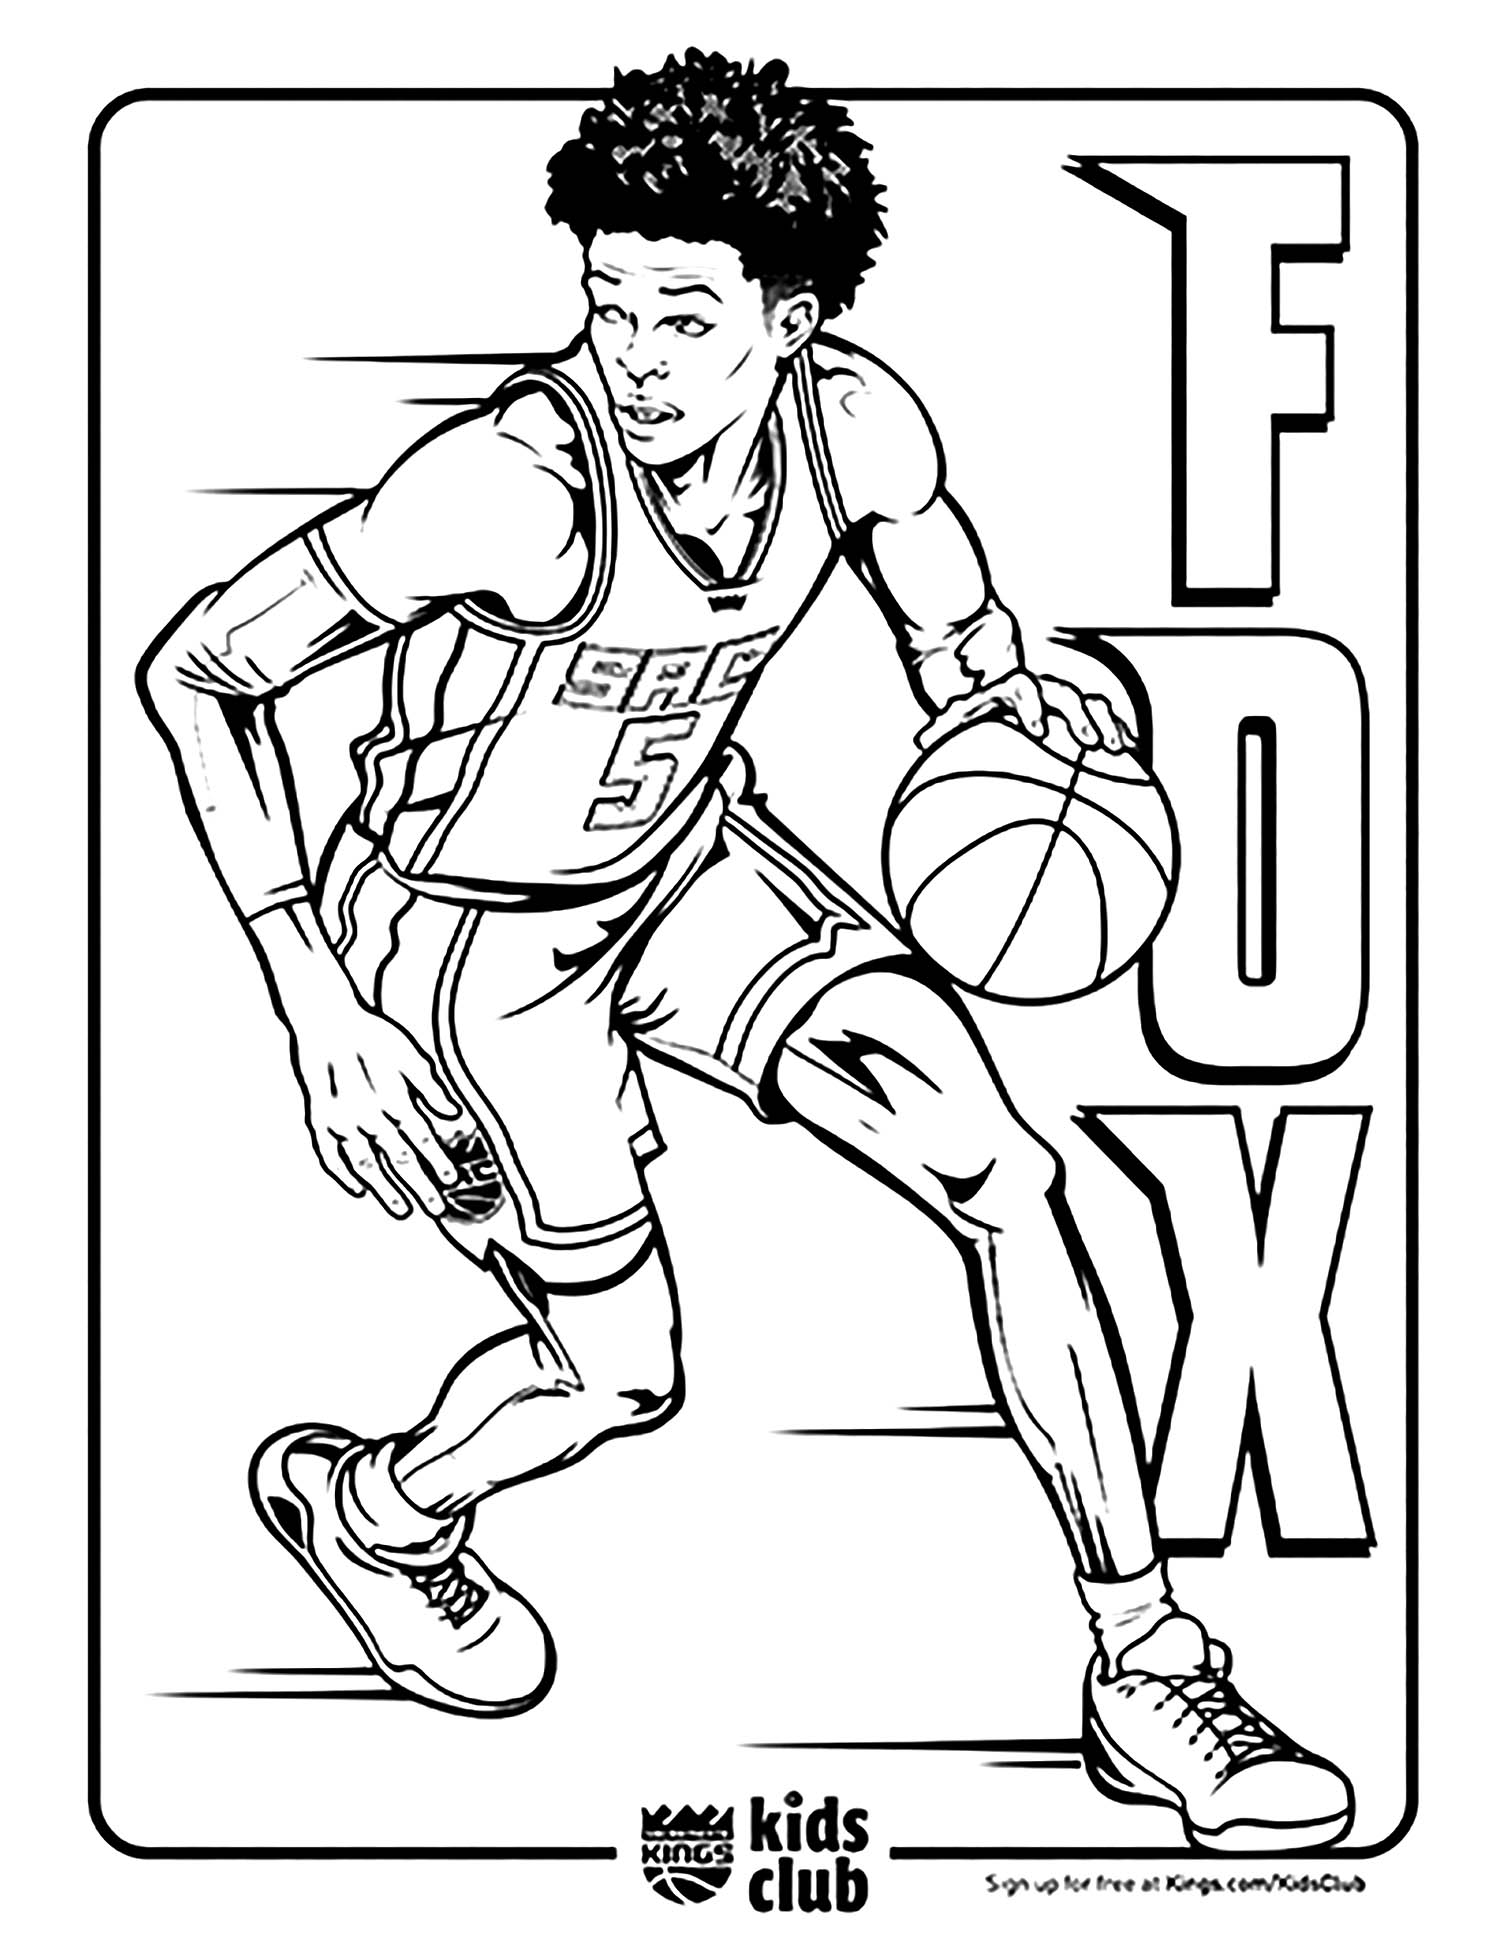 Basketball Free To Color For Children Basketball Kids Coloring Pages